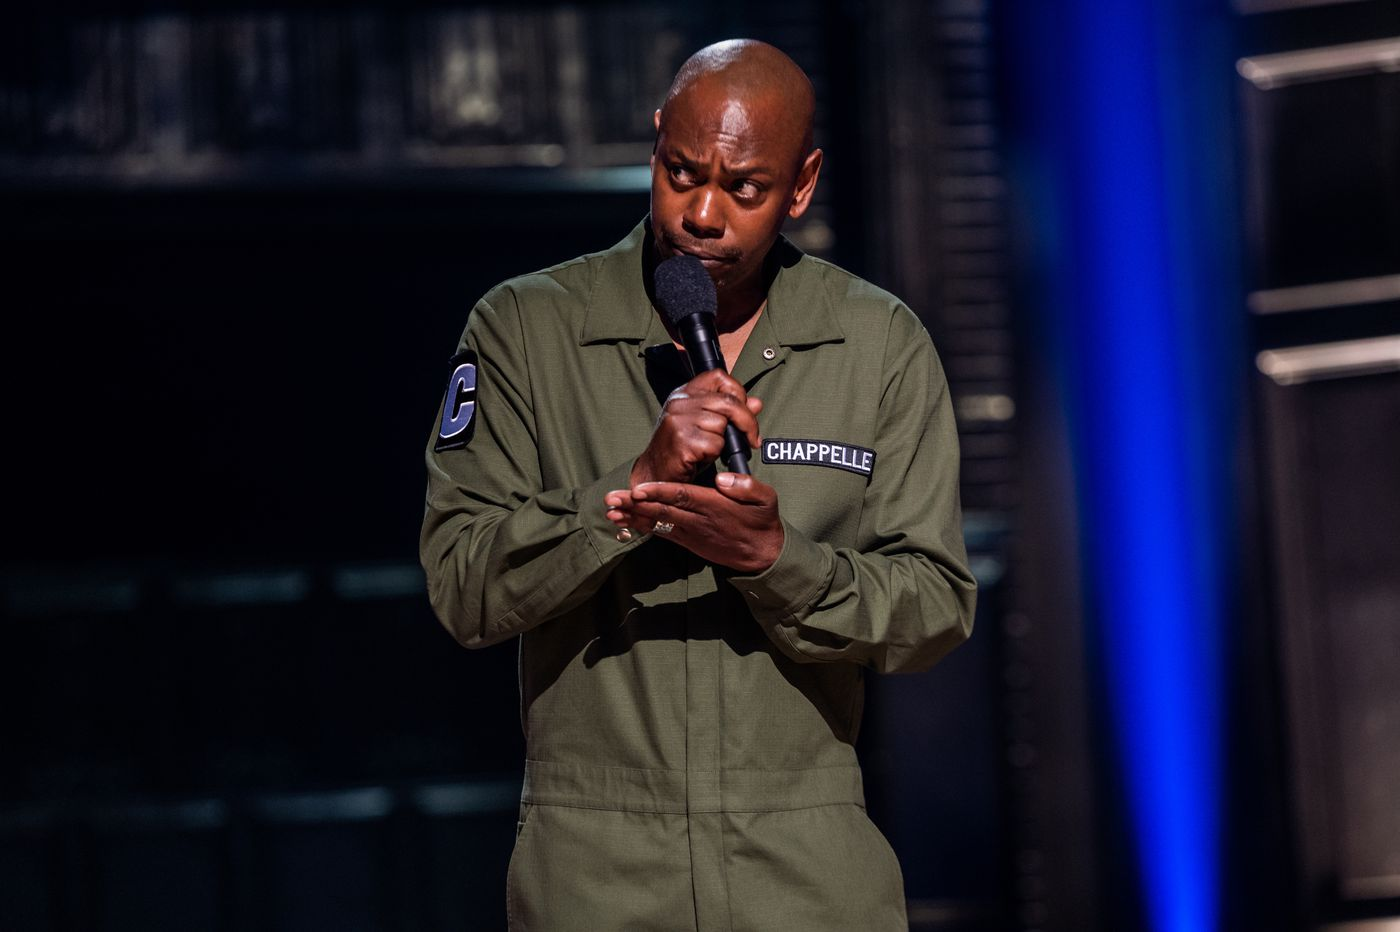 Dave Chappelle defends Kevin Hart in controversial new Netflix comedy special 'Sticks & Stones'